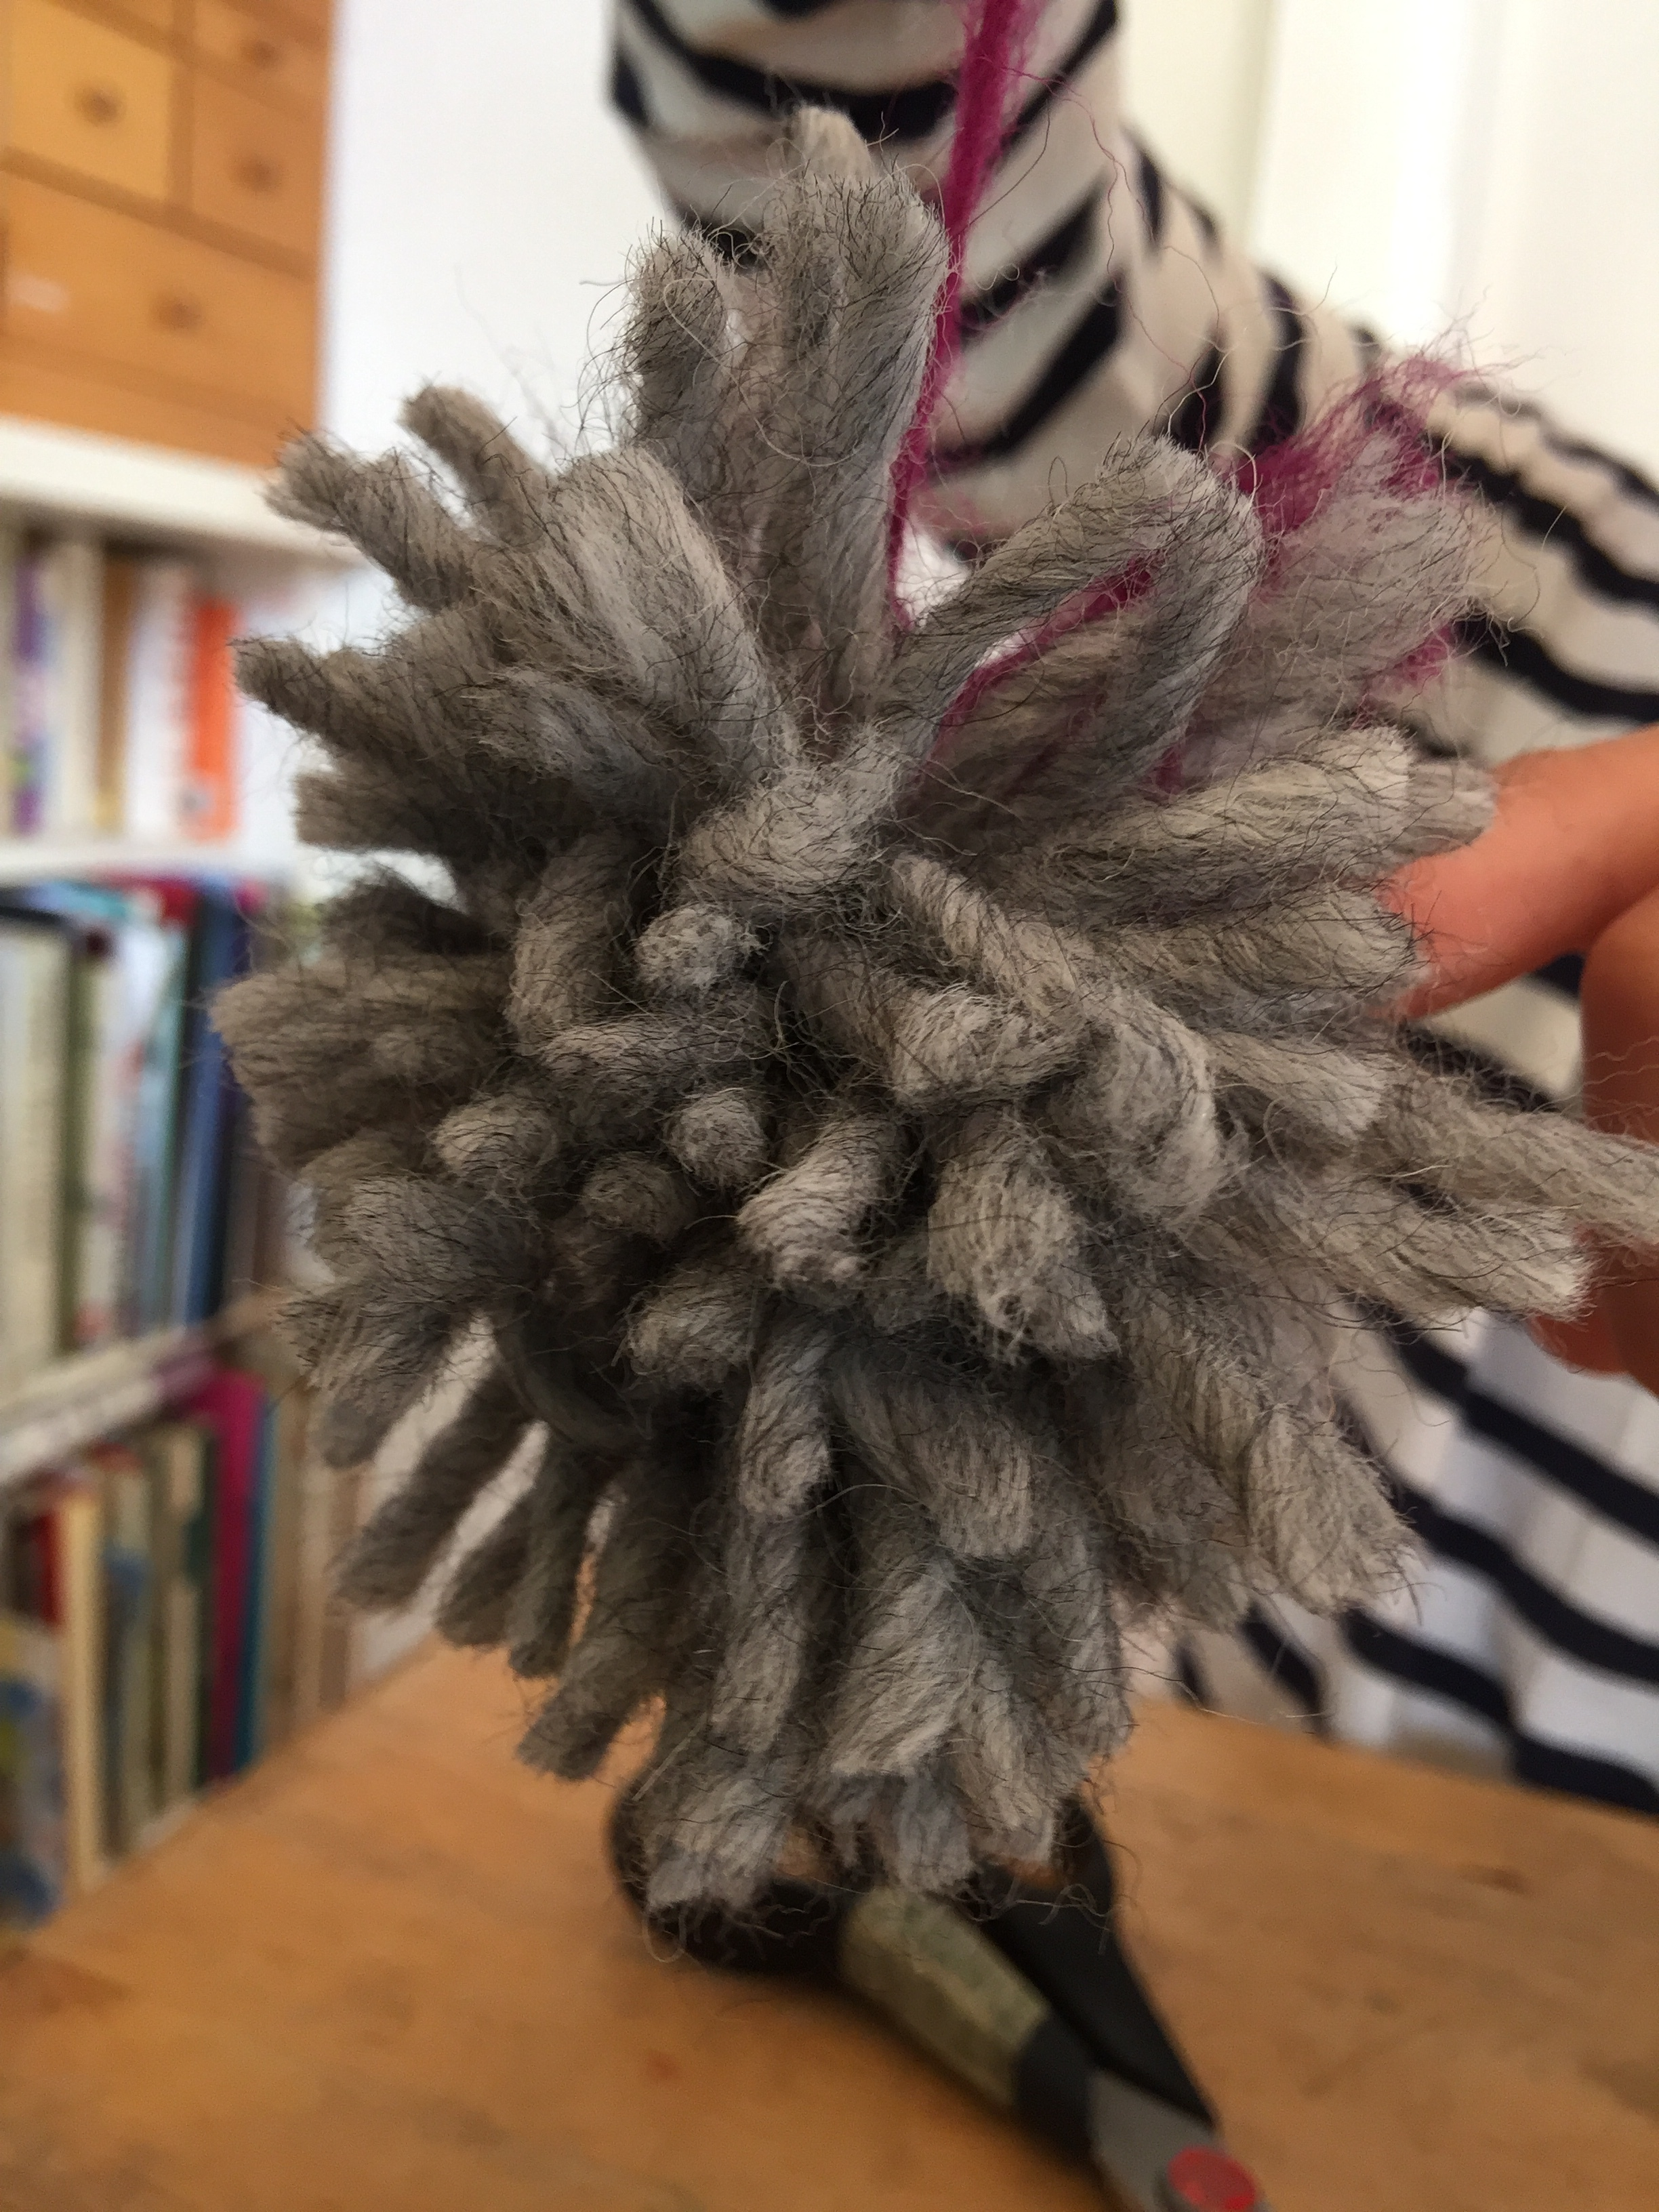 Here is our pom-pom once the loops were cut, looking rather shaggy.